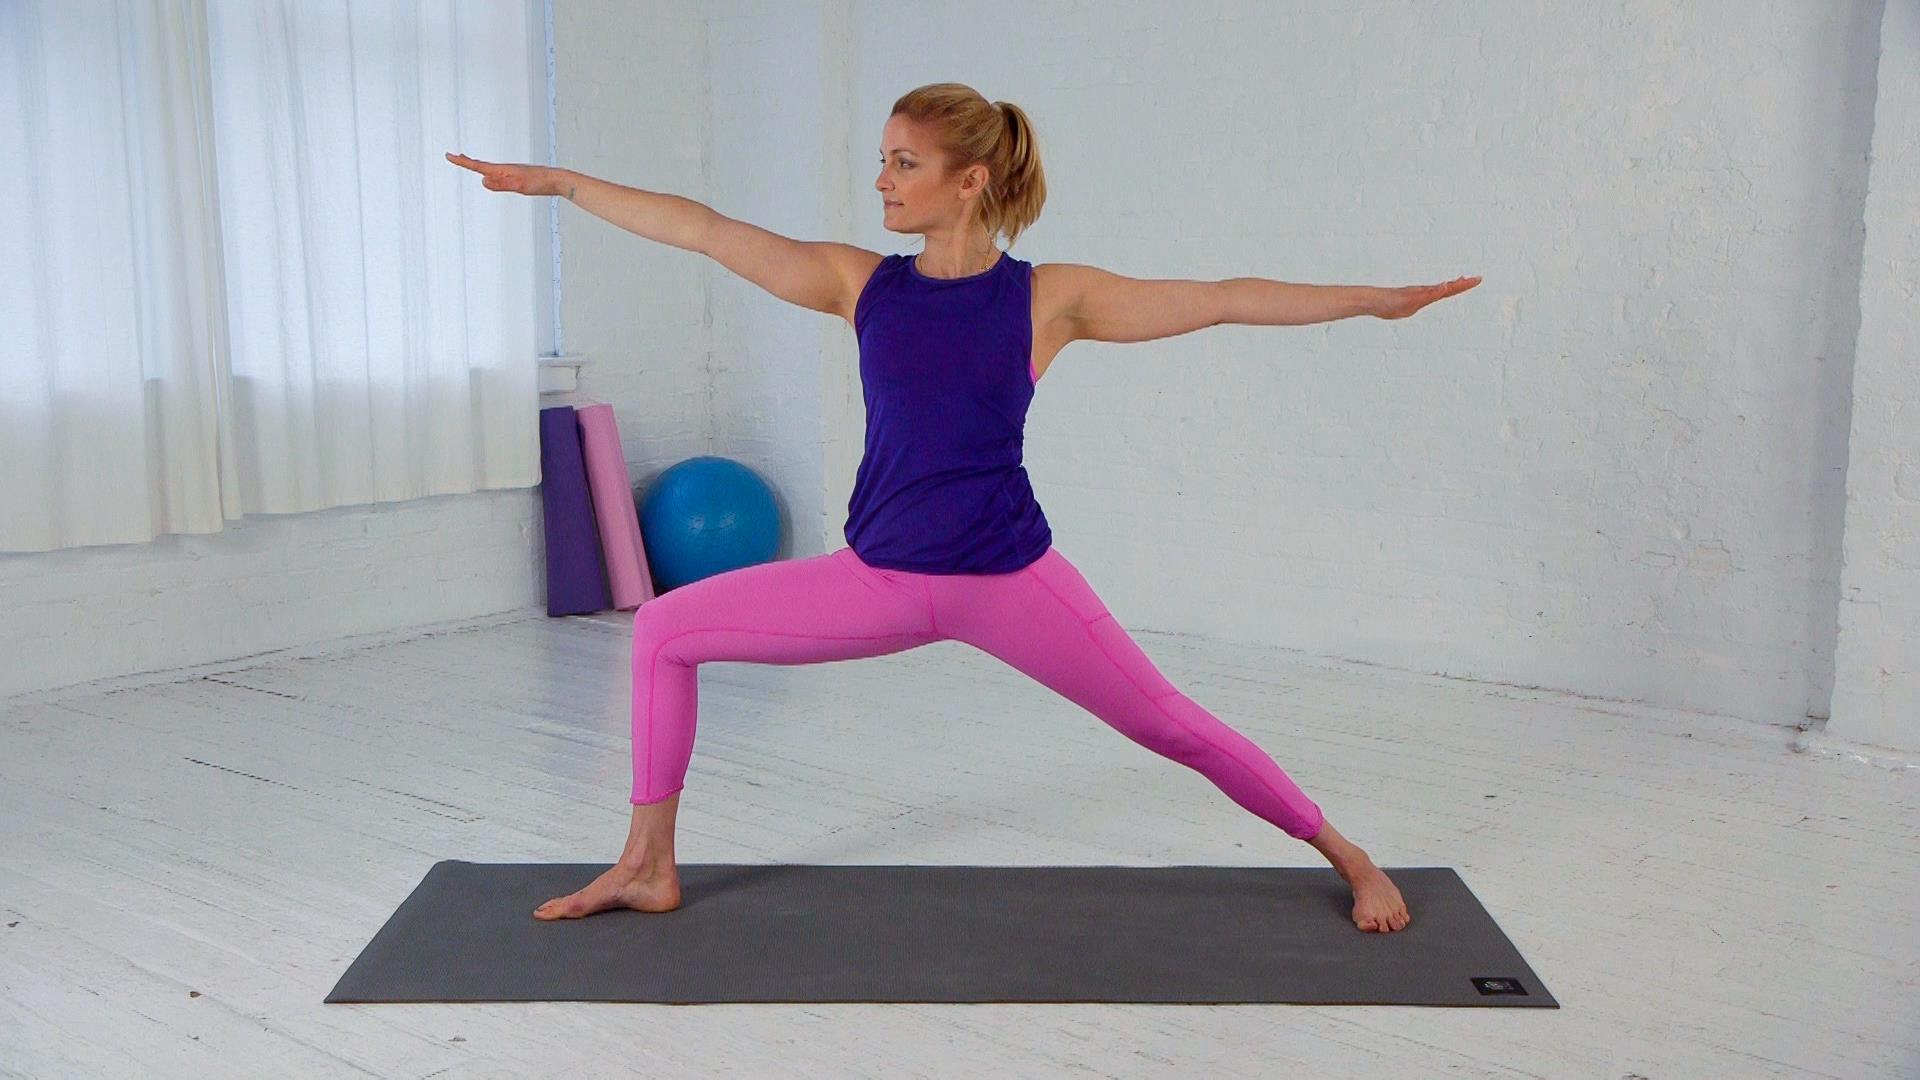 How to Do Warrior II: The Yoga Pose That Can Tone Your Butt